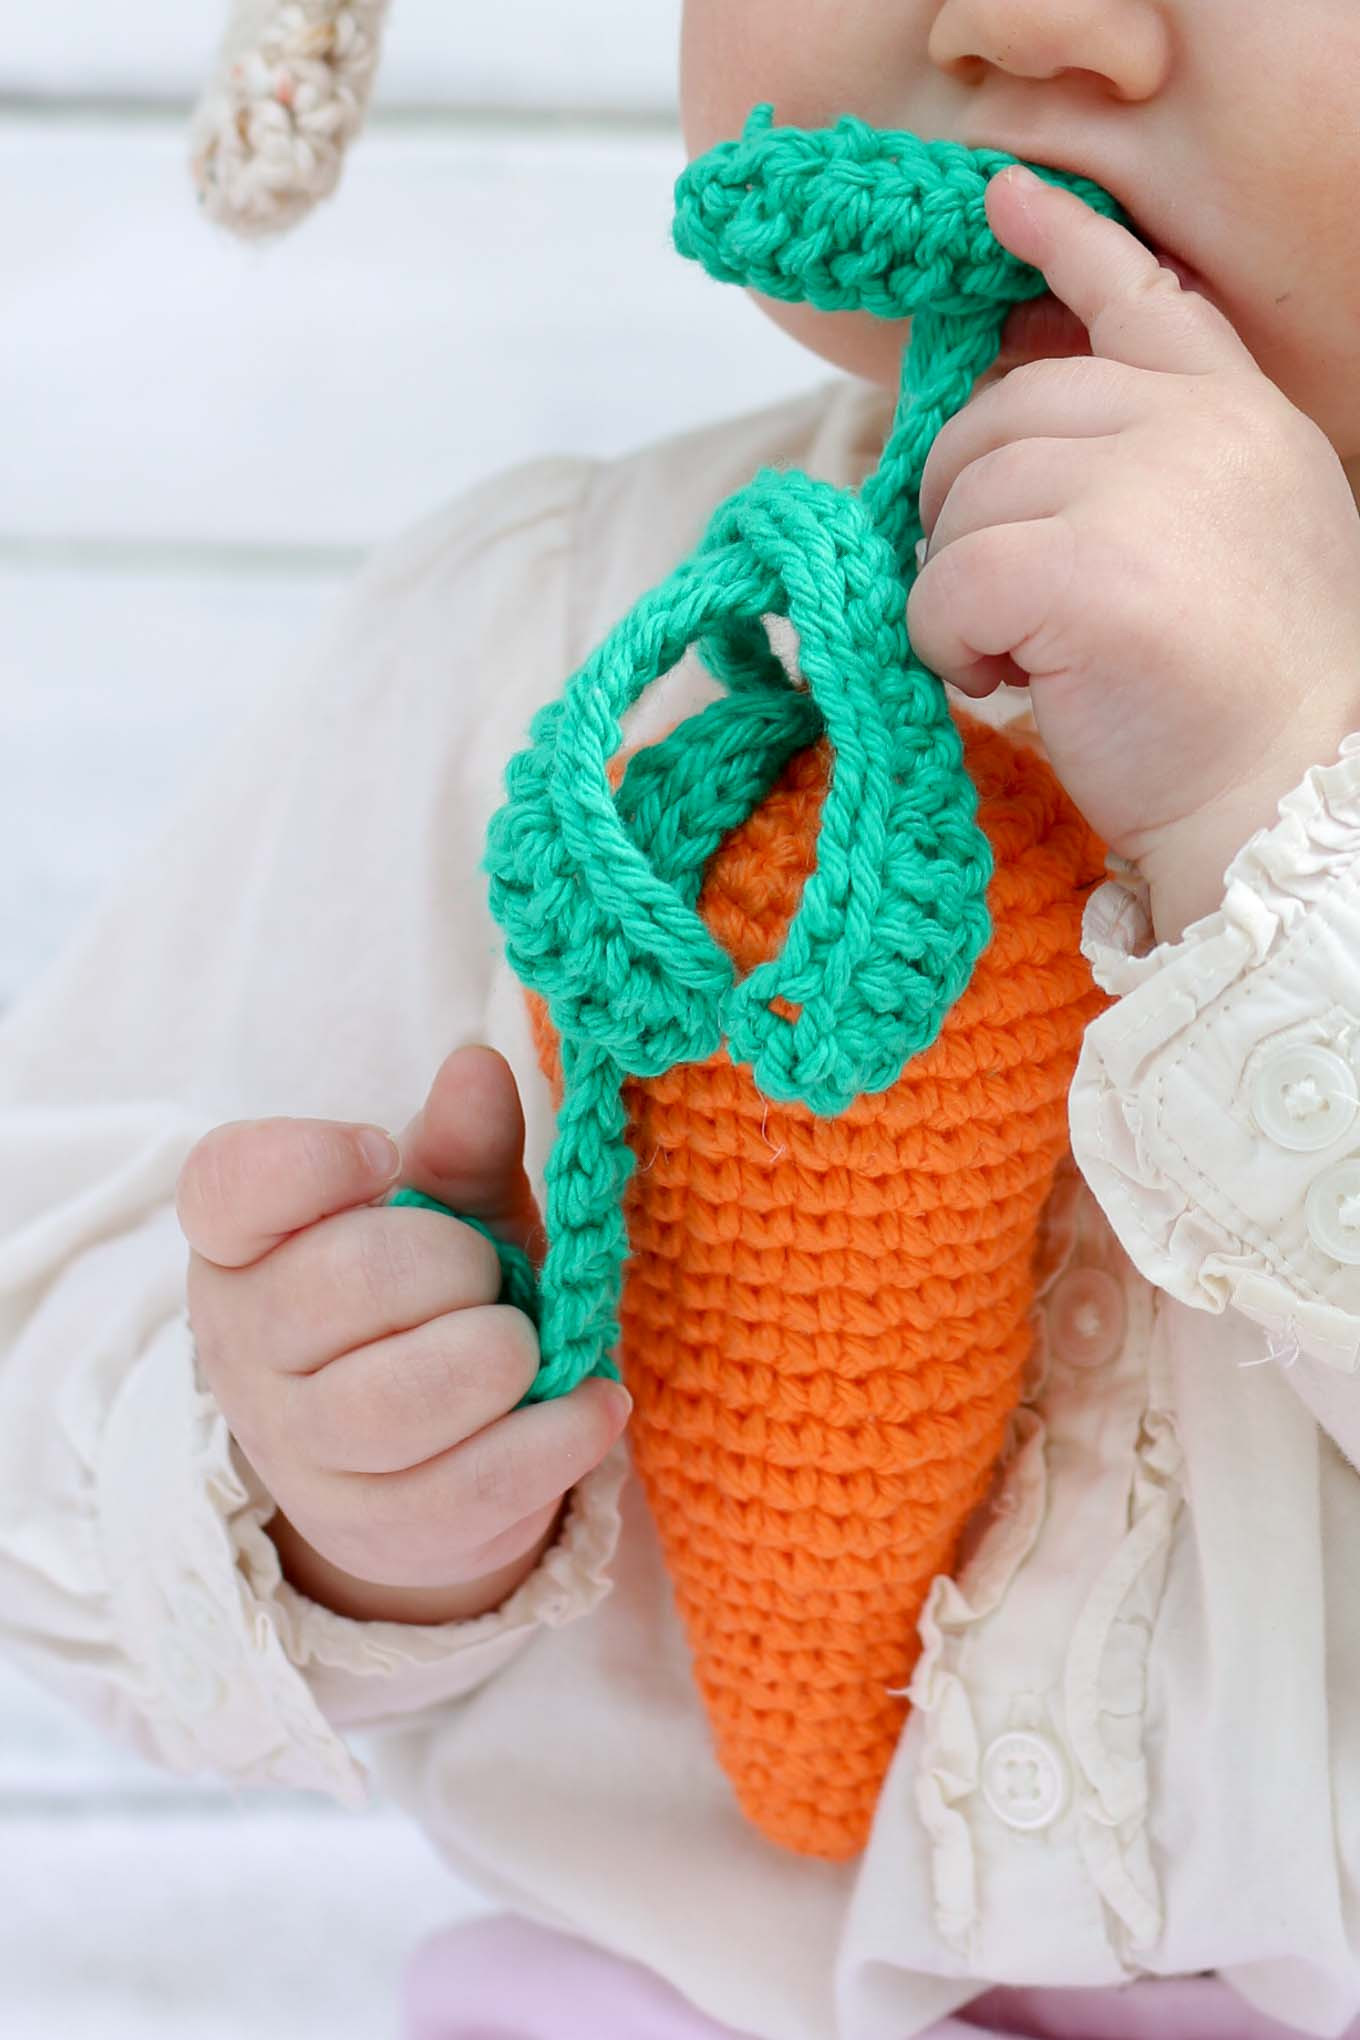 Crochet Baby toys Awesome 27 Crochet Baby toys that Make Wonderful Baby Shower Gifts Of Great 46 Photos Crochet Baby toys